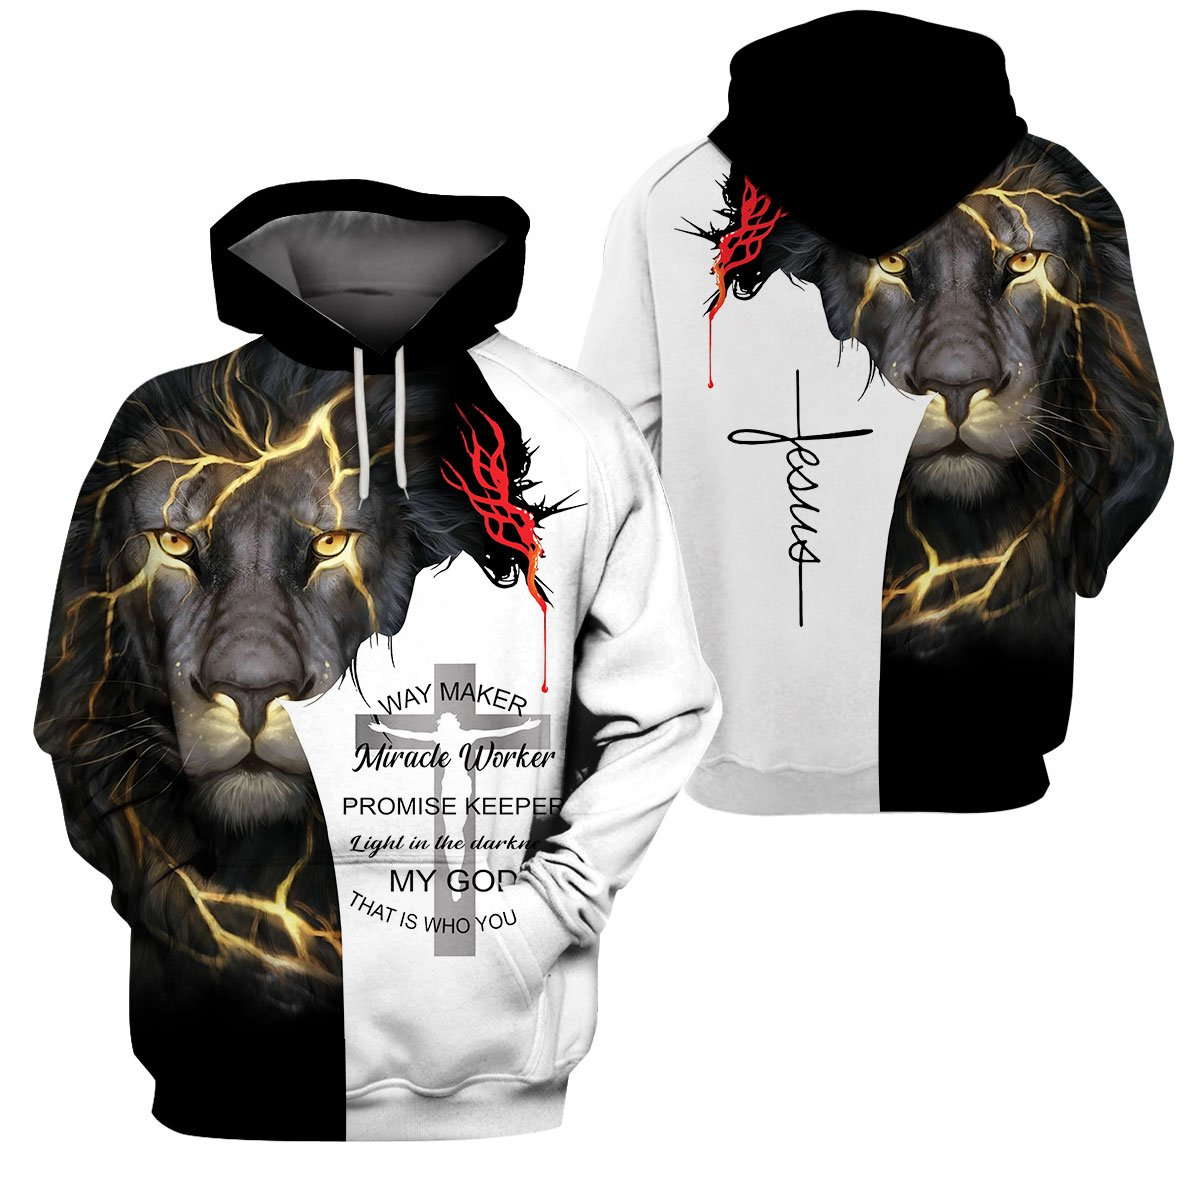 3D Christian Hoodie - Way Maker, Miracle Worker, Promise Keeper - GnWarriors Clothing